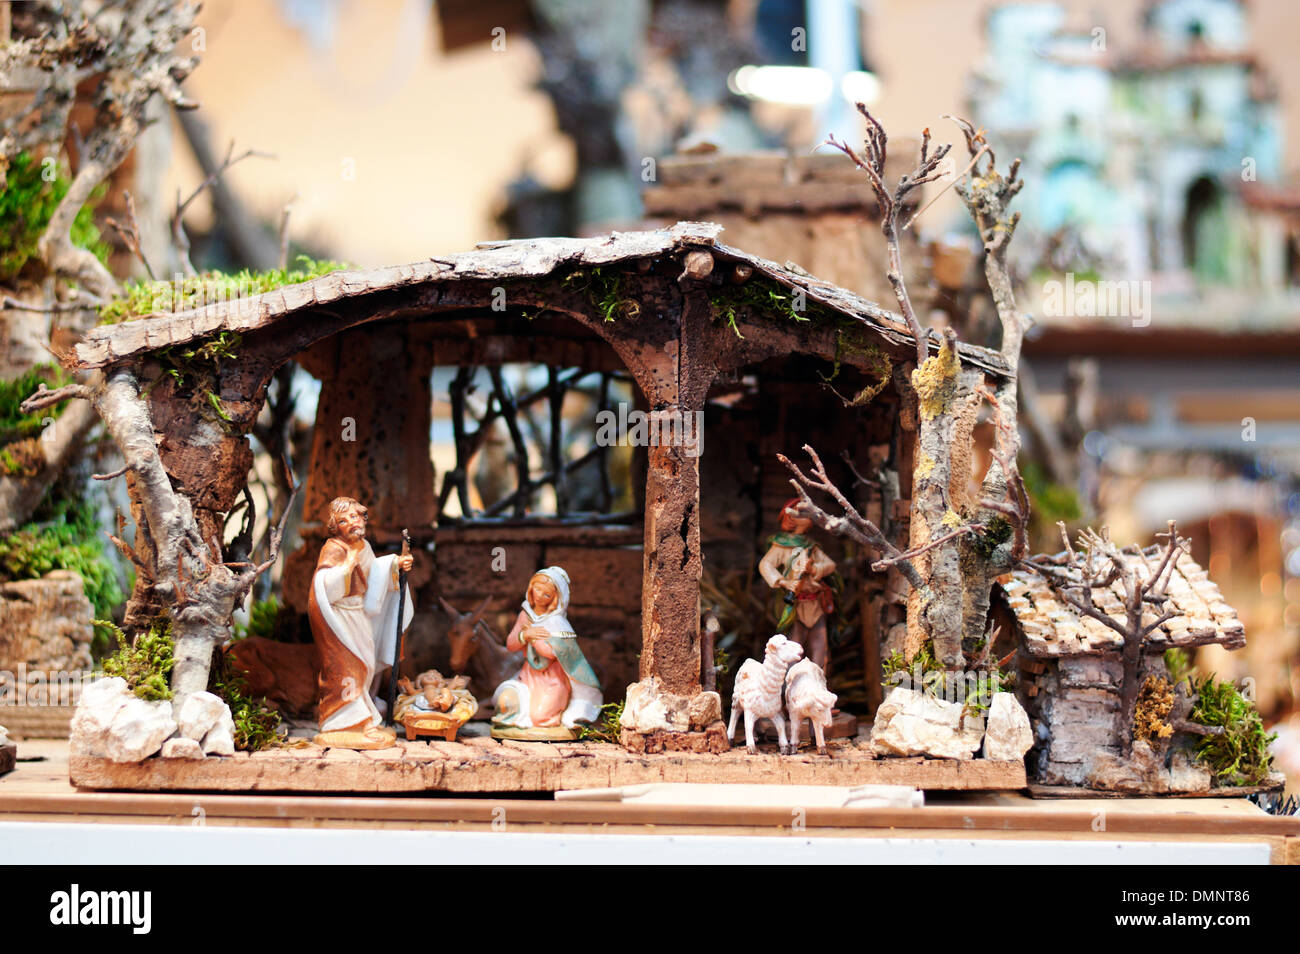 Italian nativity scene with hand-colored figures close-up. - Stock Image